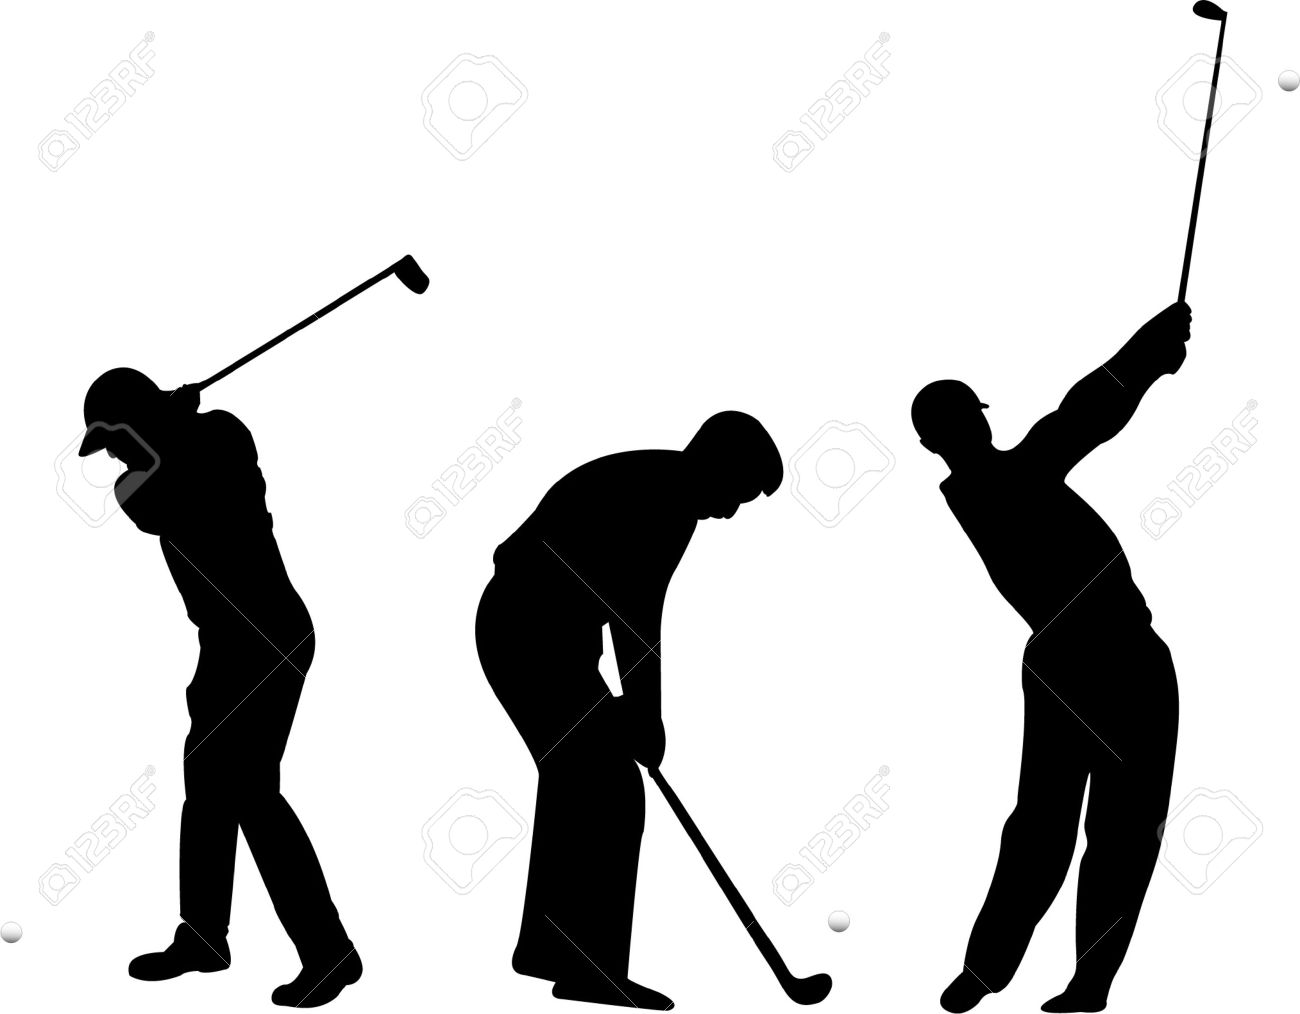 Golf Silhouettes Vector Royalty Free Cliparts Vectors And Stock